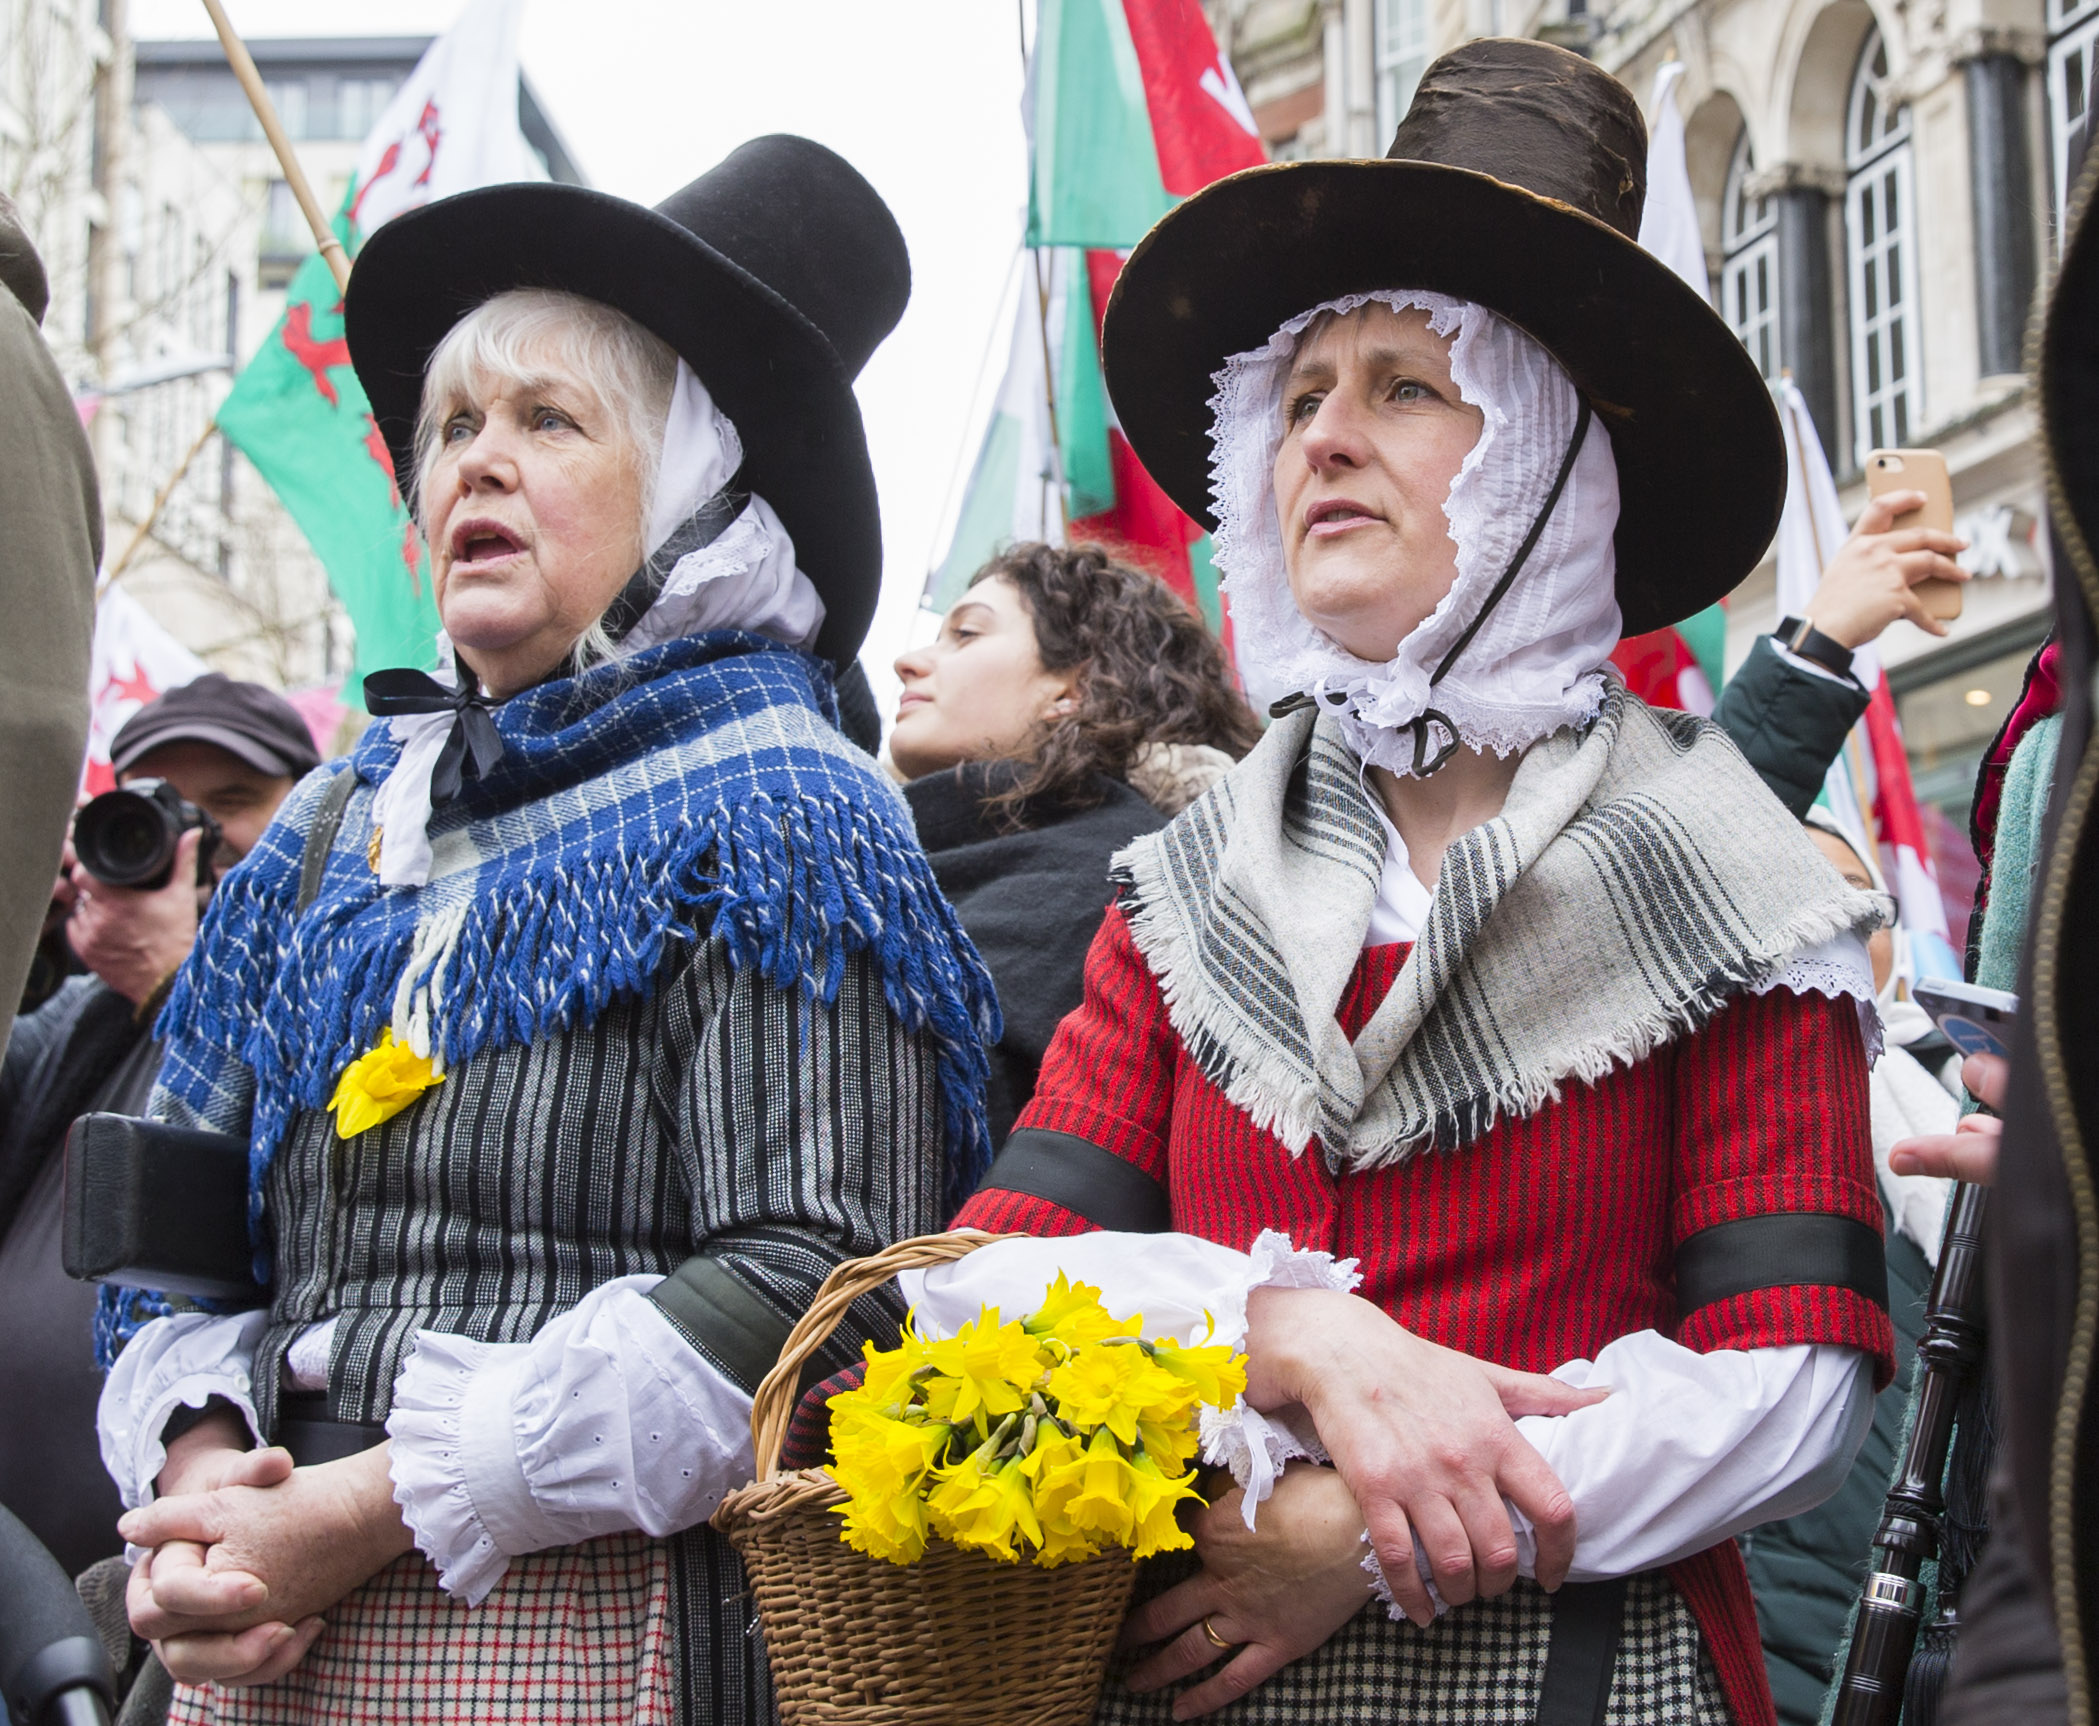 Women in traditional Welsh dress sing the Welsh national anthem during St David's Day parade on March 1, 2017 in Cardiff, Wales.